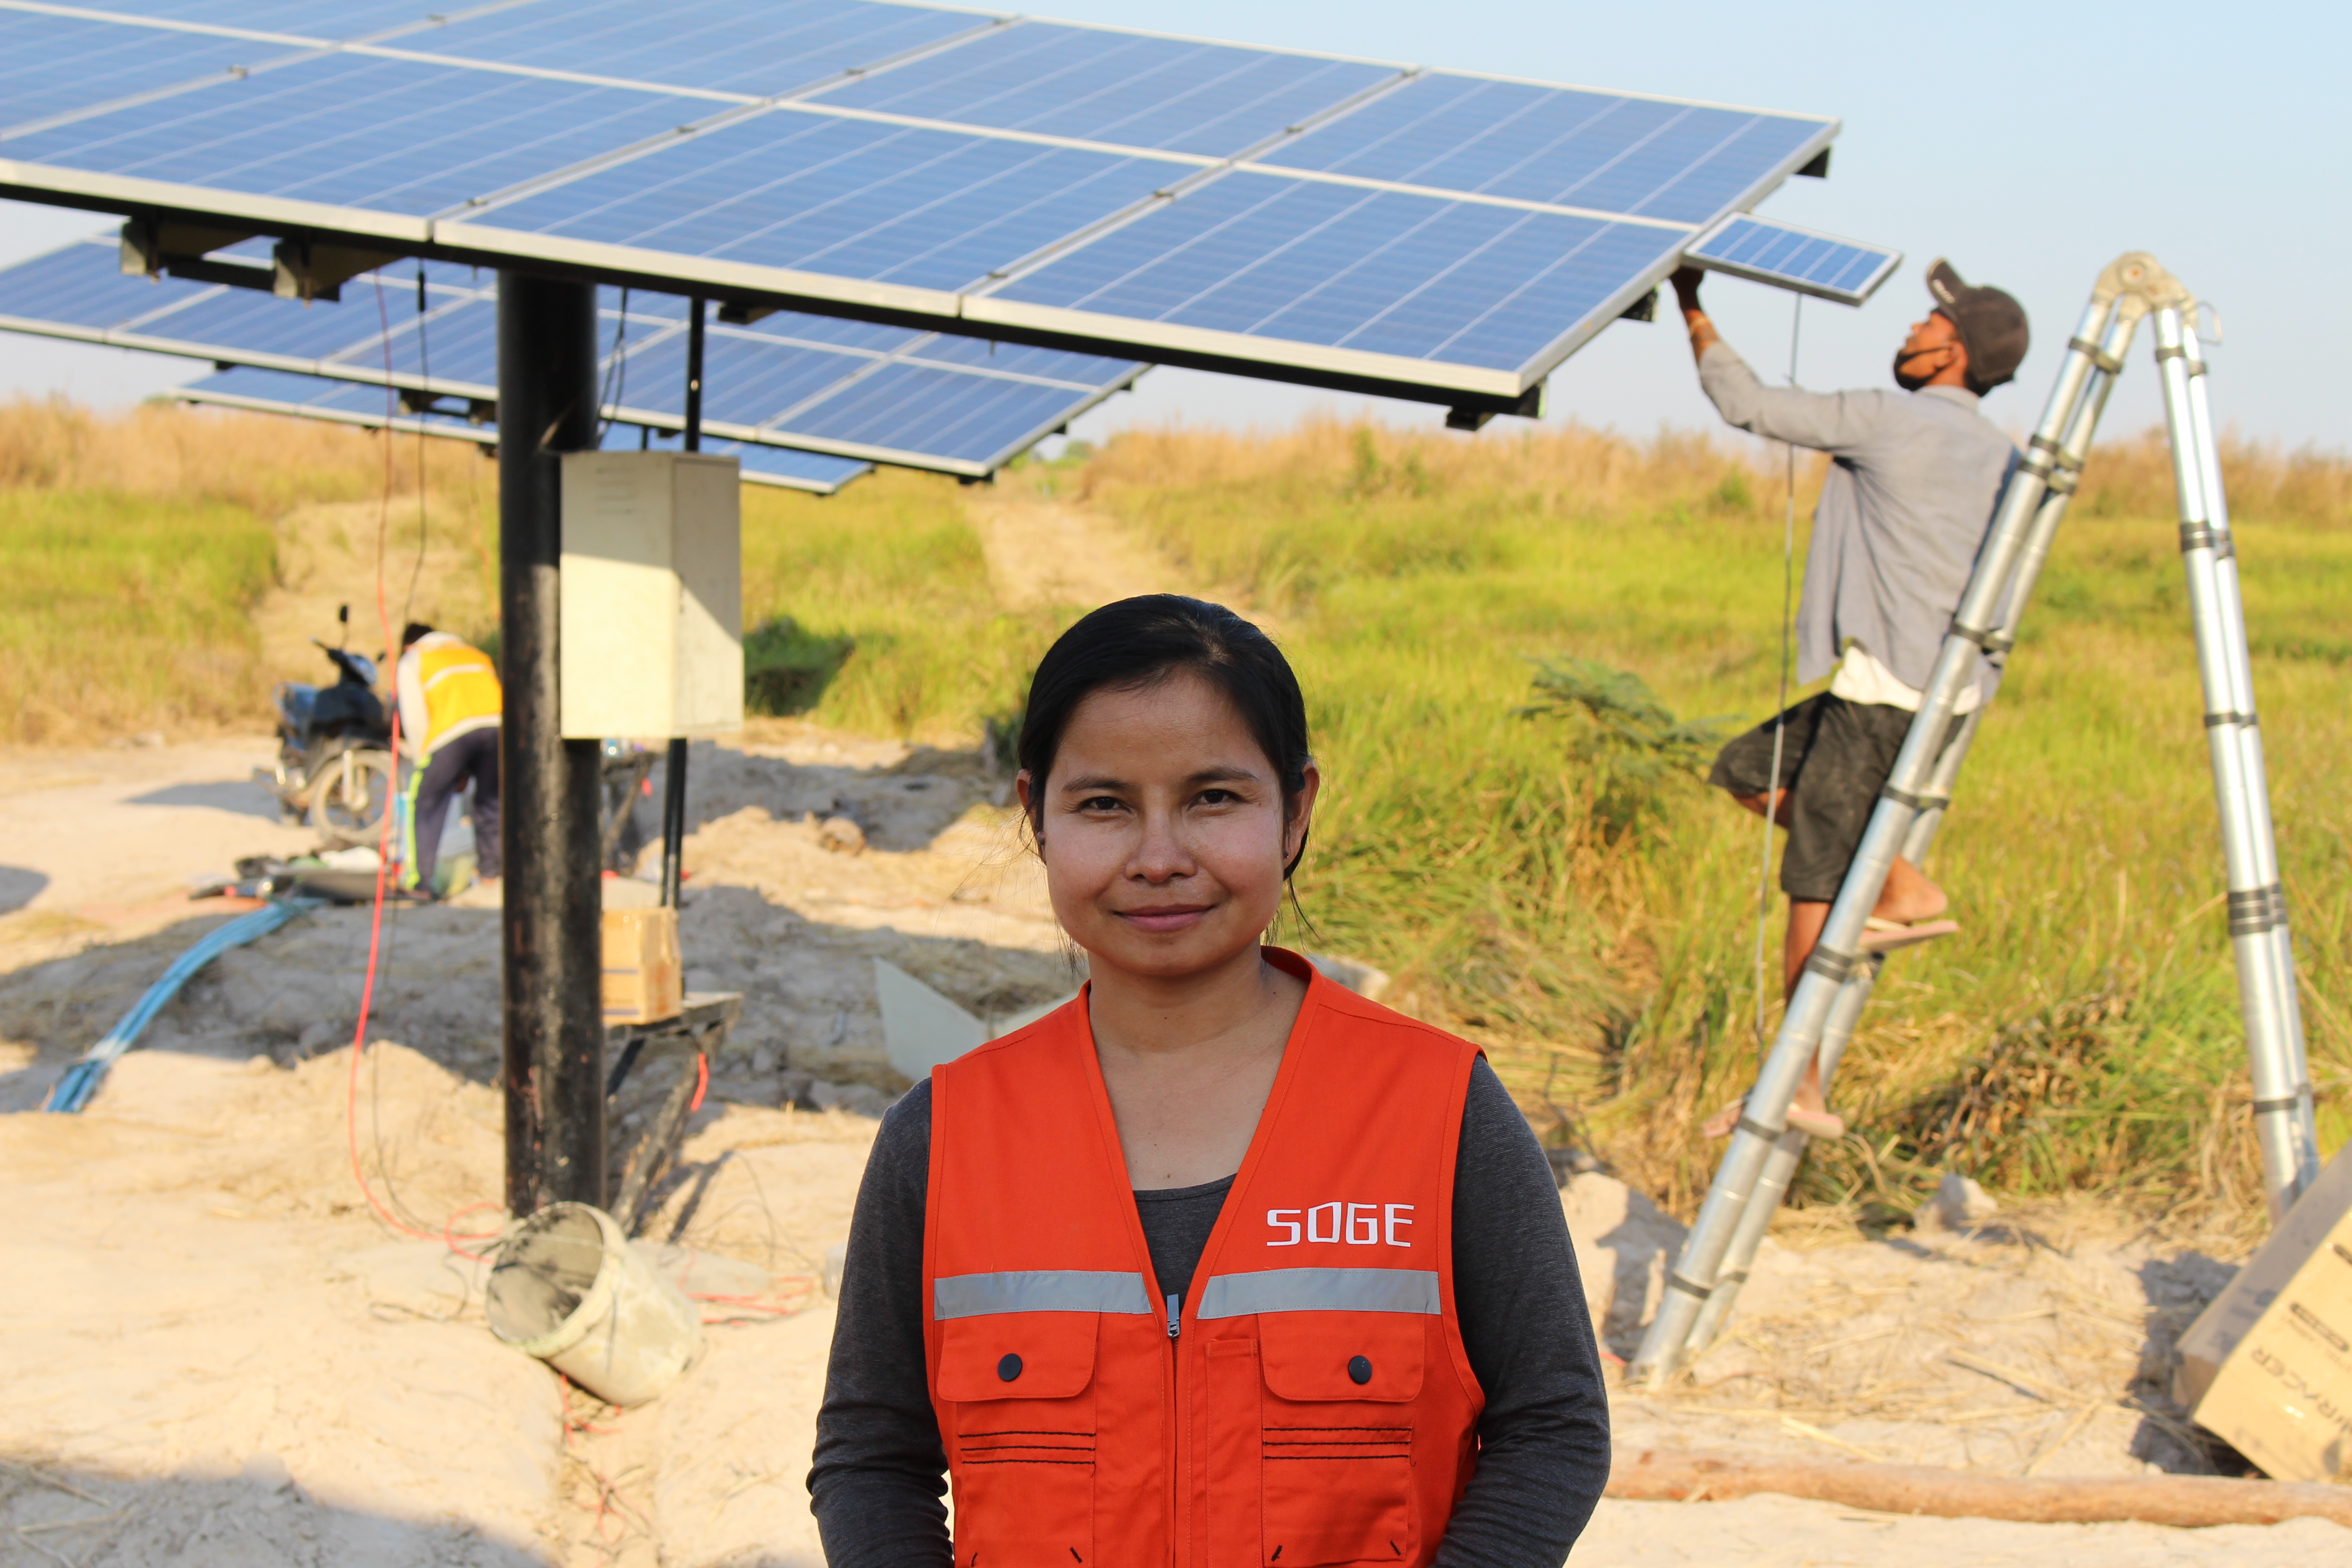 Leading the way in solar green energy: Thida's journey